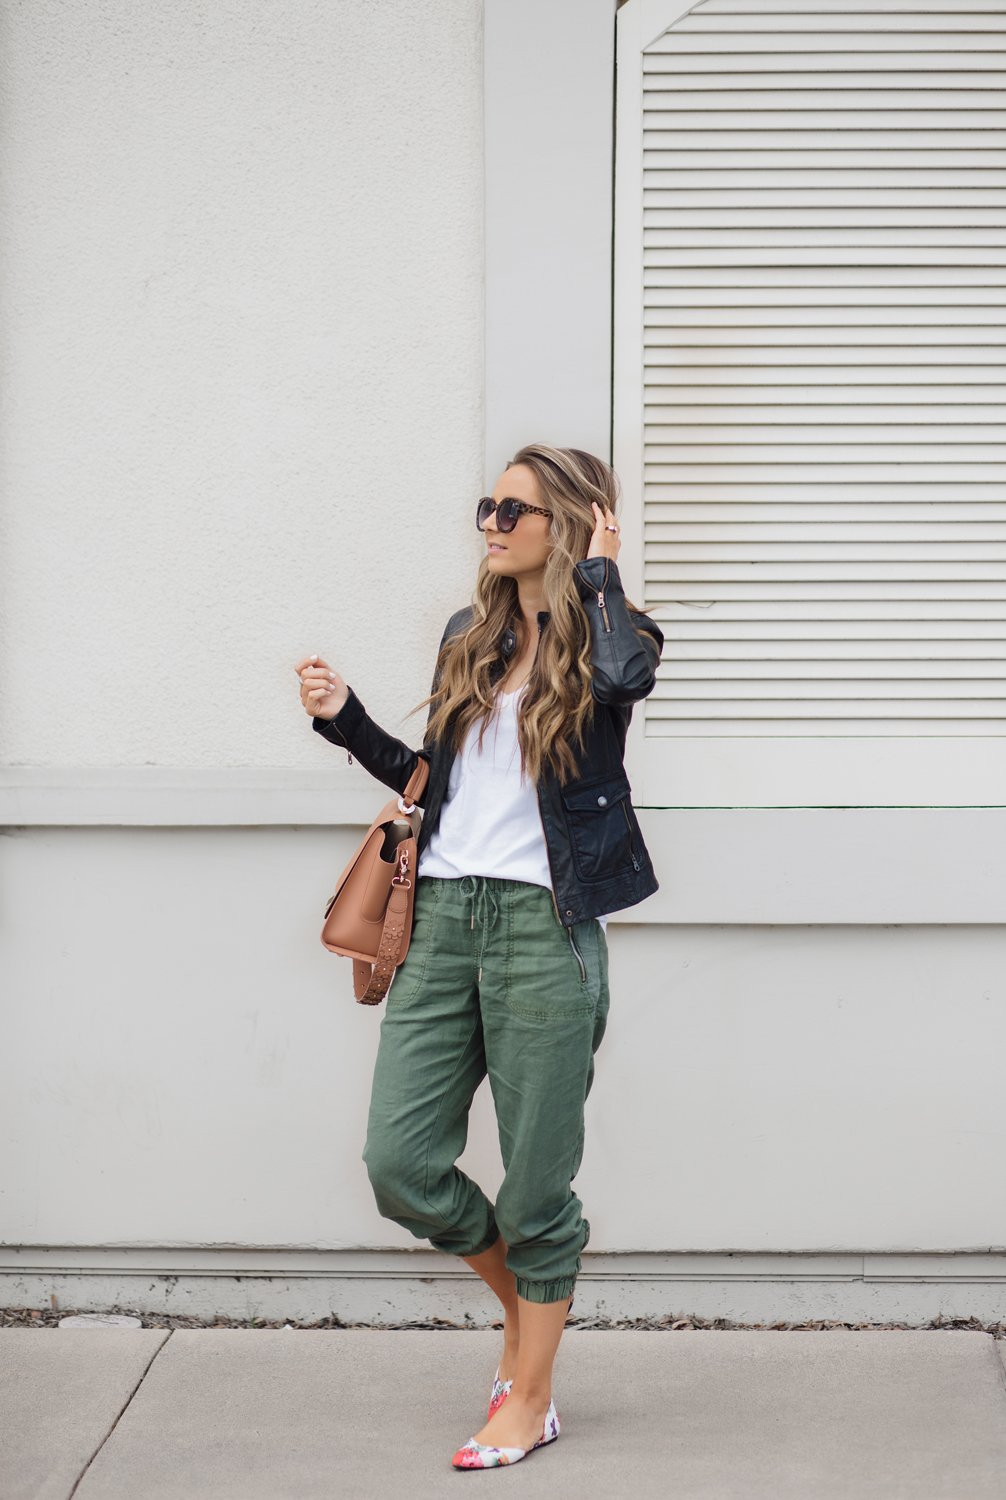 Merrick's Art   A Simple Spring Outfit with Zappos